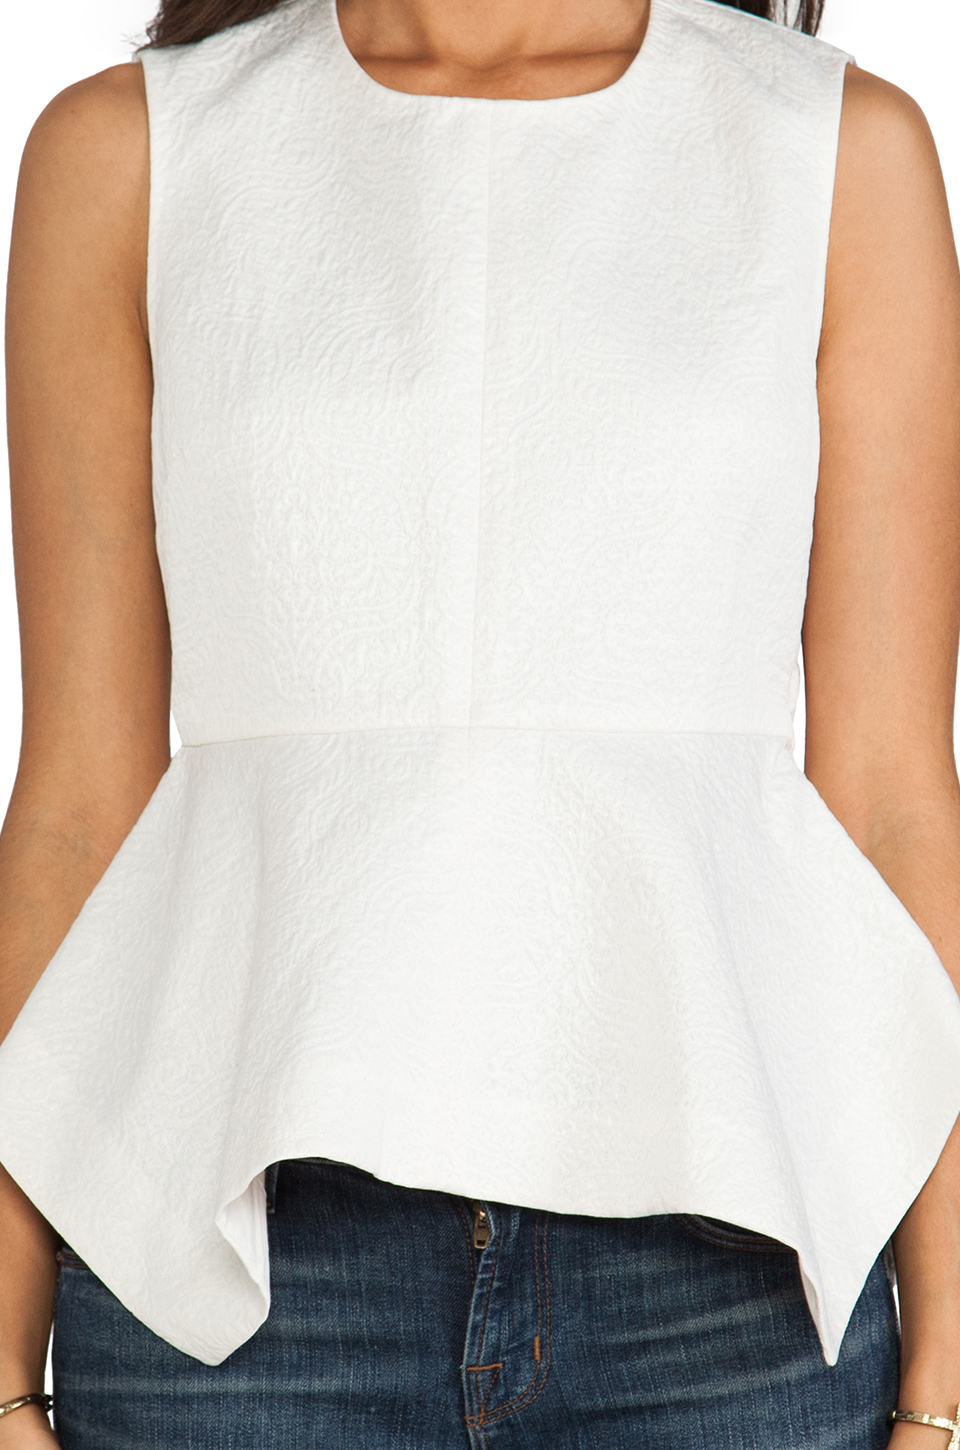 Elizabeth and James Yumi Peplum Top in Ivory